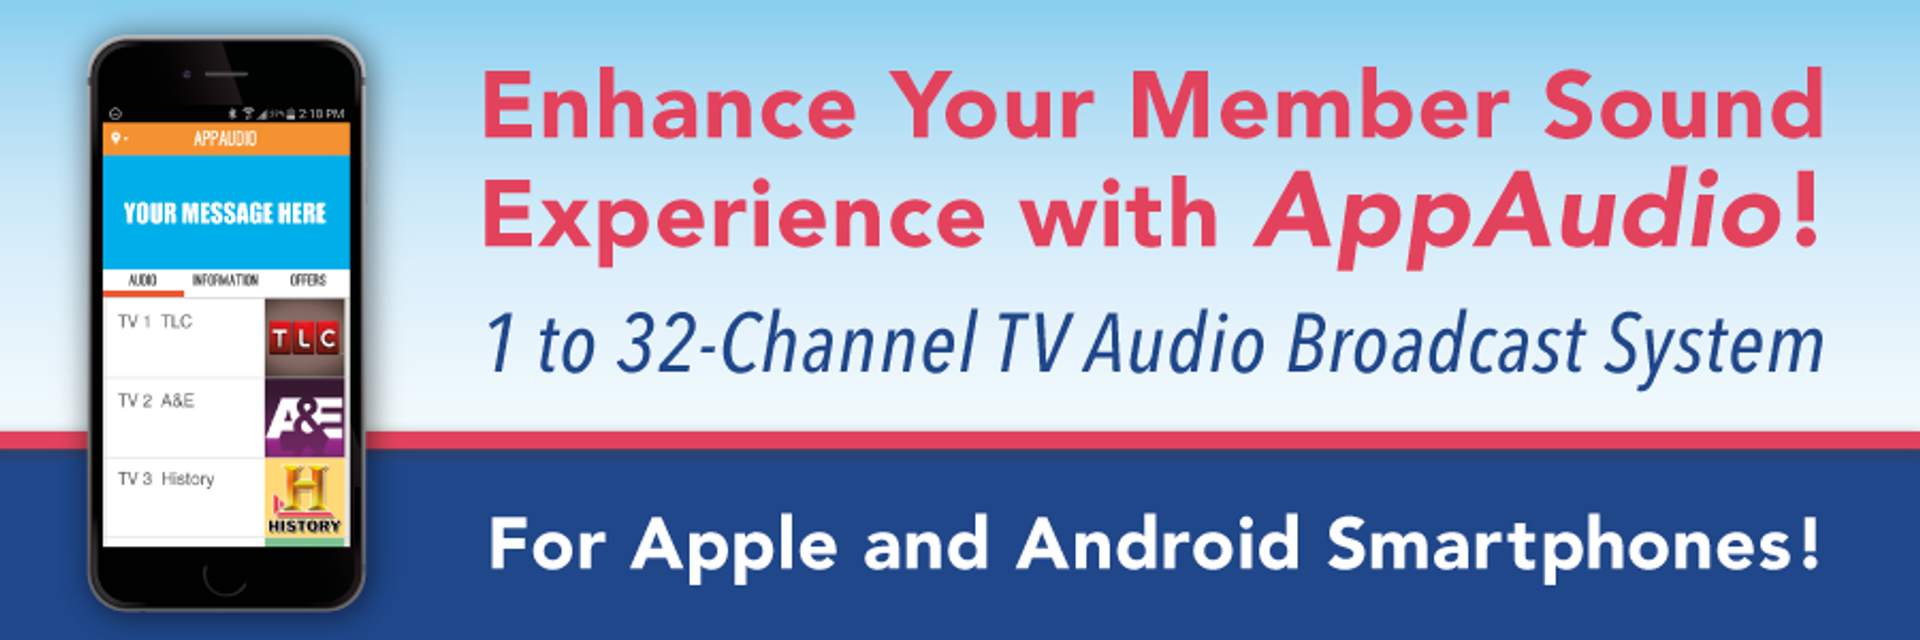 AppAudio for enhancing your member's sound experience!